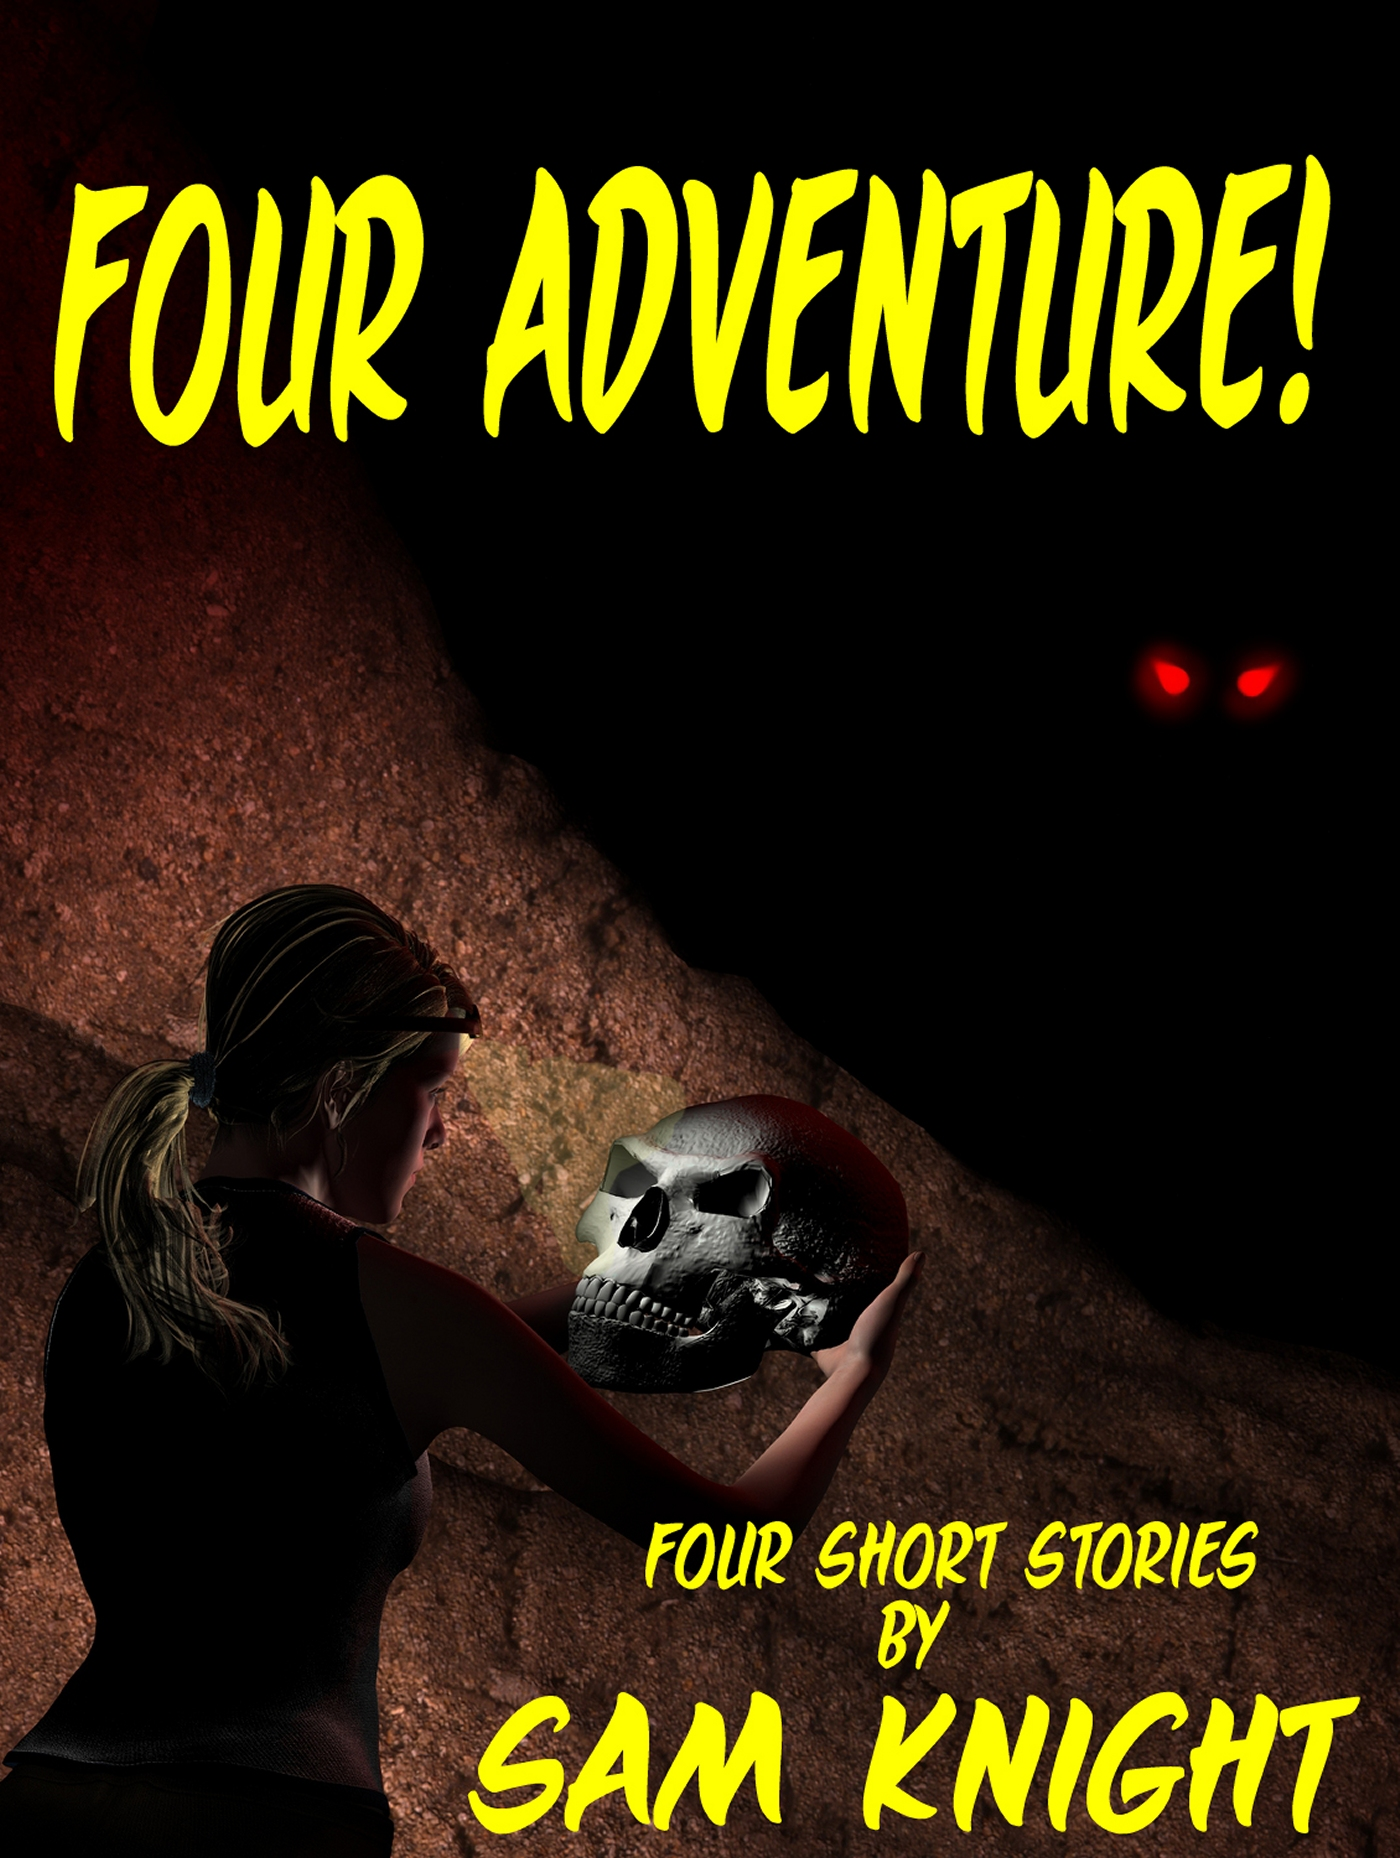 Four Adventure!, an Ebook by Sam Knight